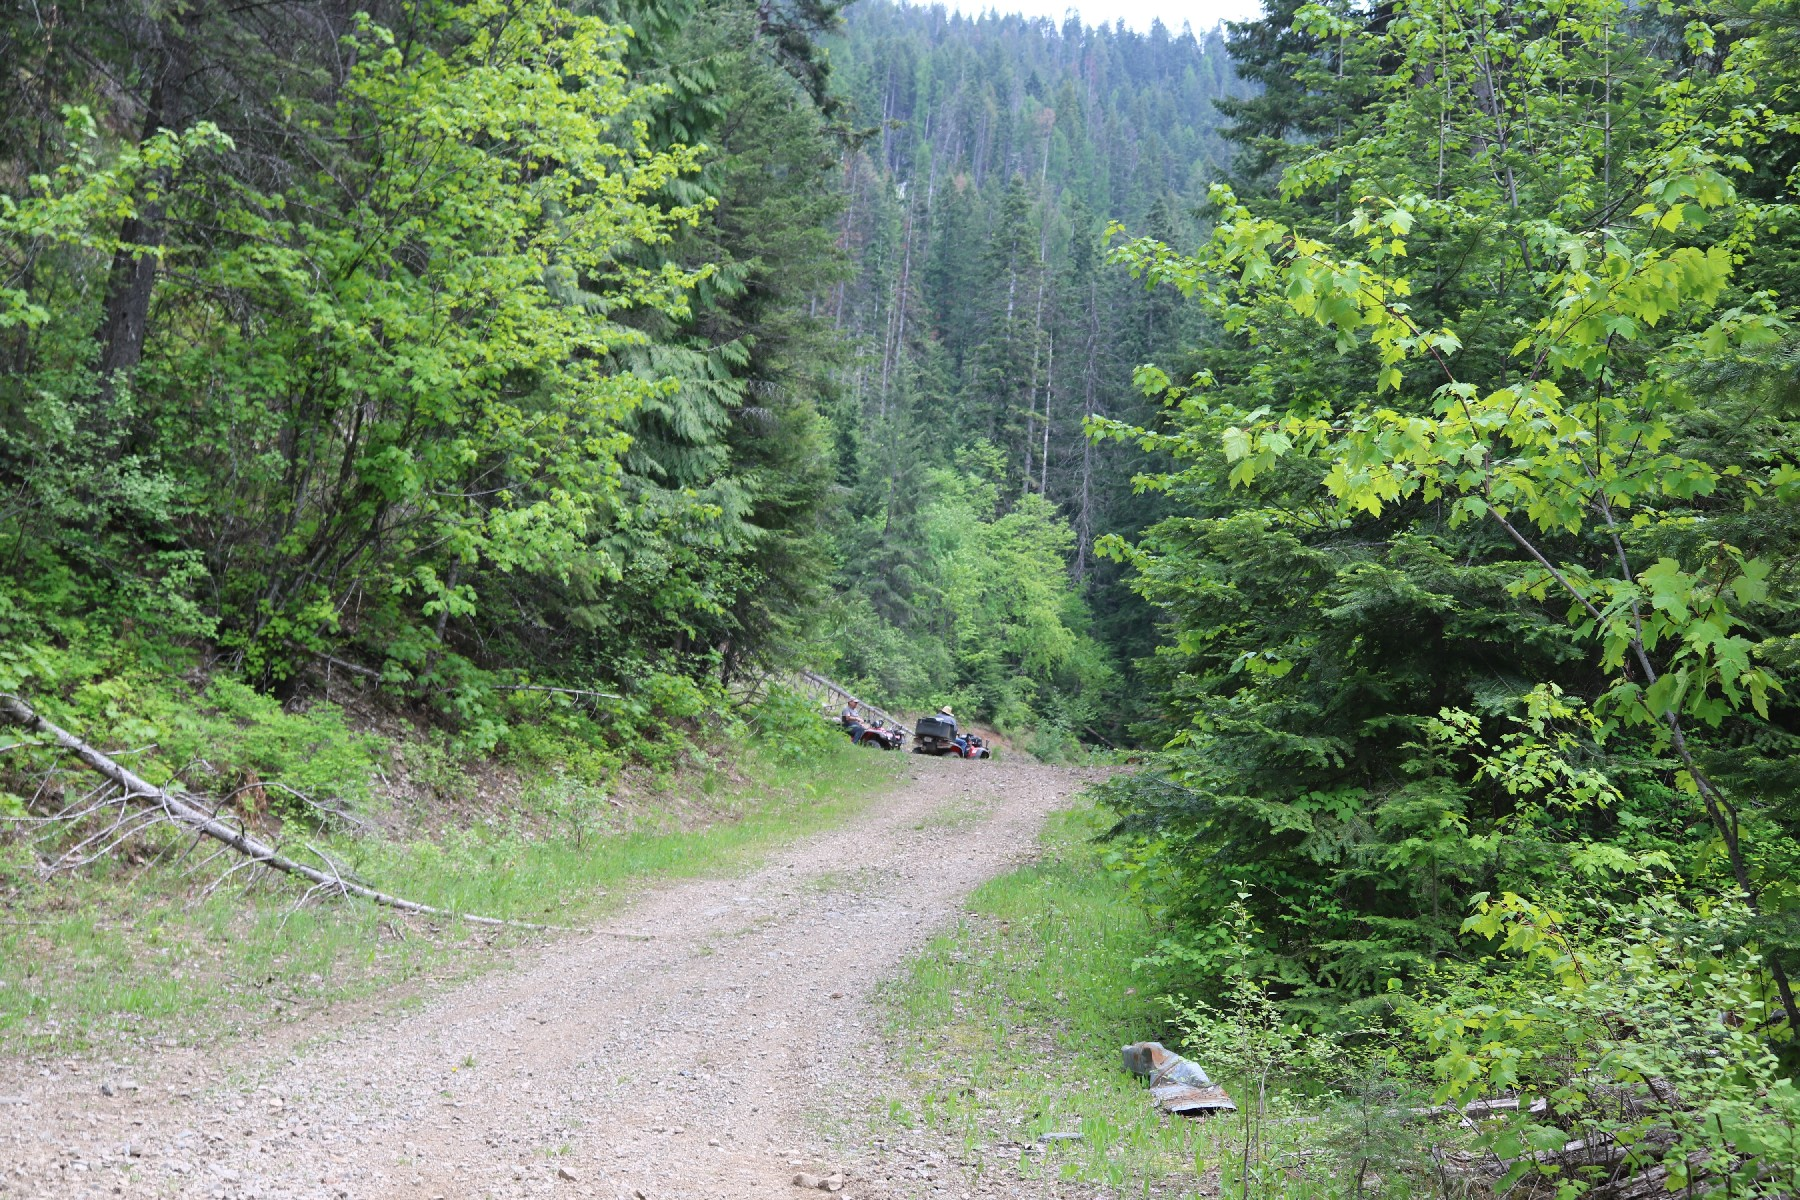 Land for Sale at Western Adventure No 2 16b Lakeview Cutoff Rd Lakeview, Idaho 83803 United States